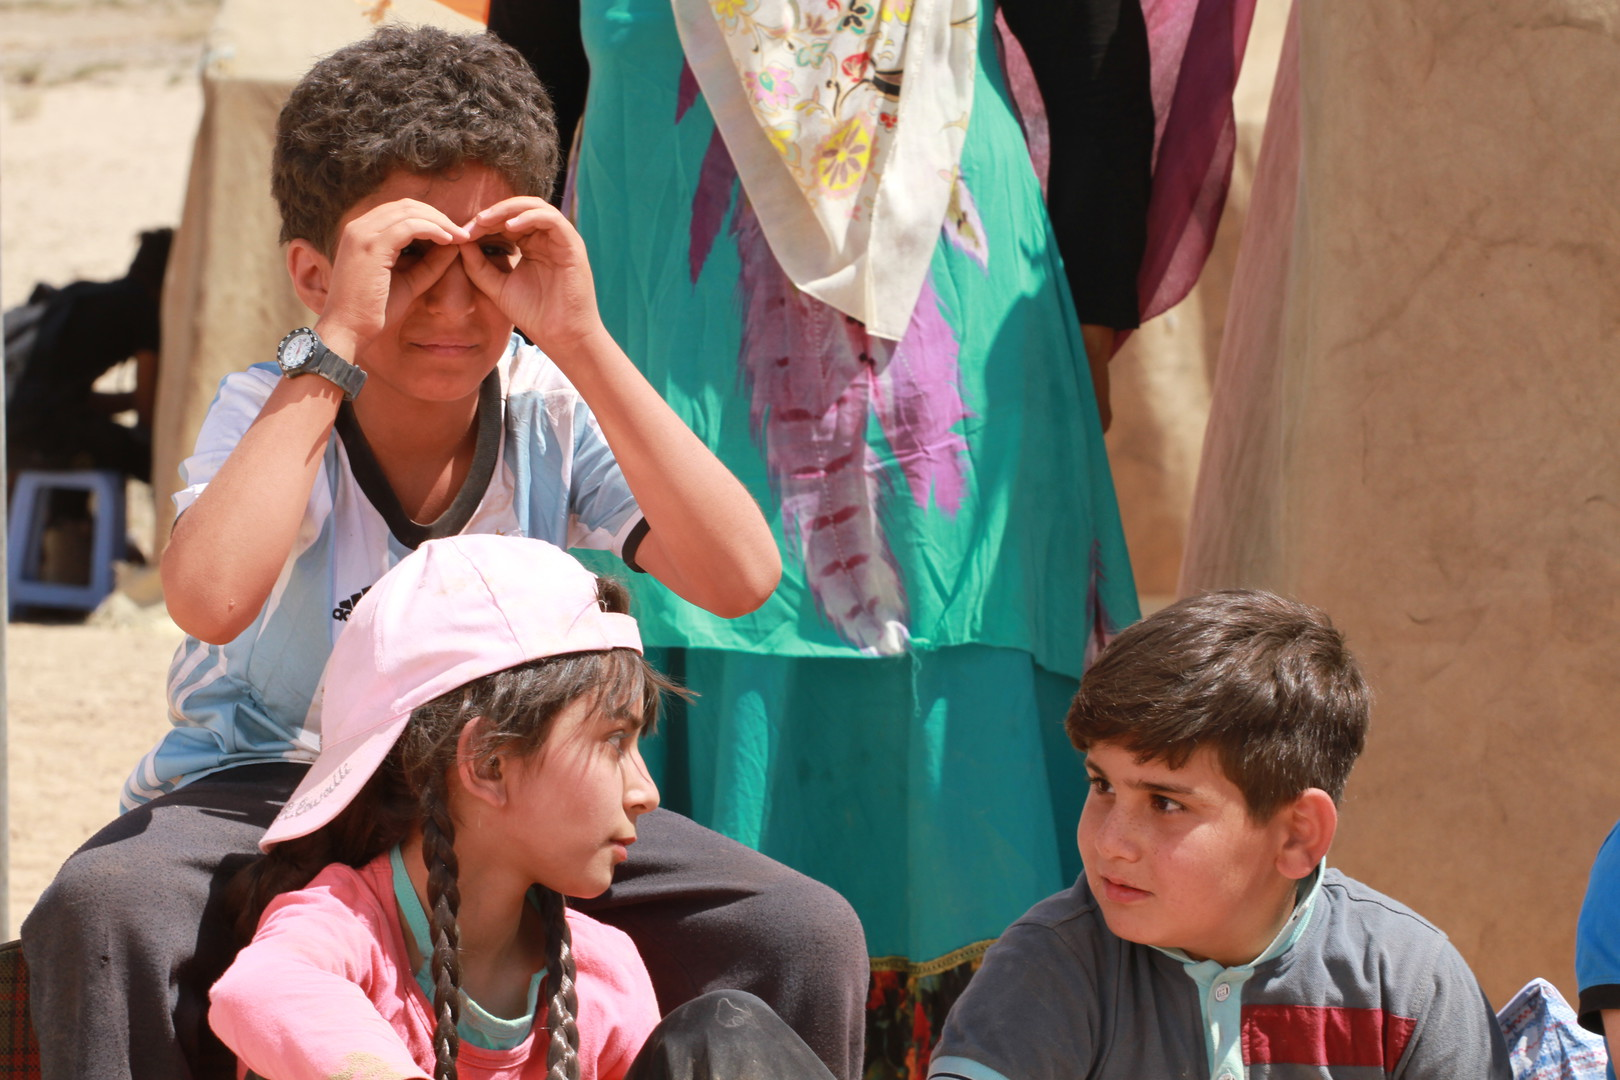 Three children sit in front of an adult whose face is not in the frame. The children's hair and clothes are dusty and wrinkled. Two of the children are looking at each other with concerned faces. The third child holds their hands to their face as if they are looking through binoculars.